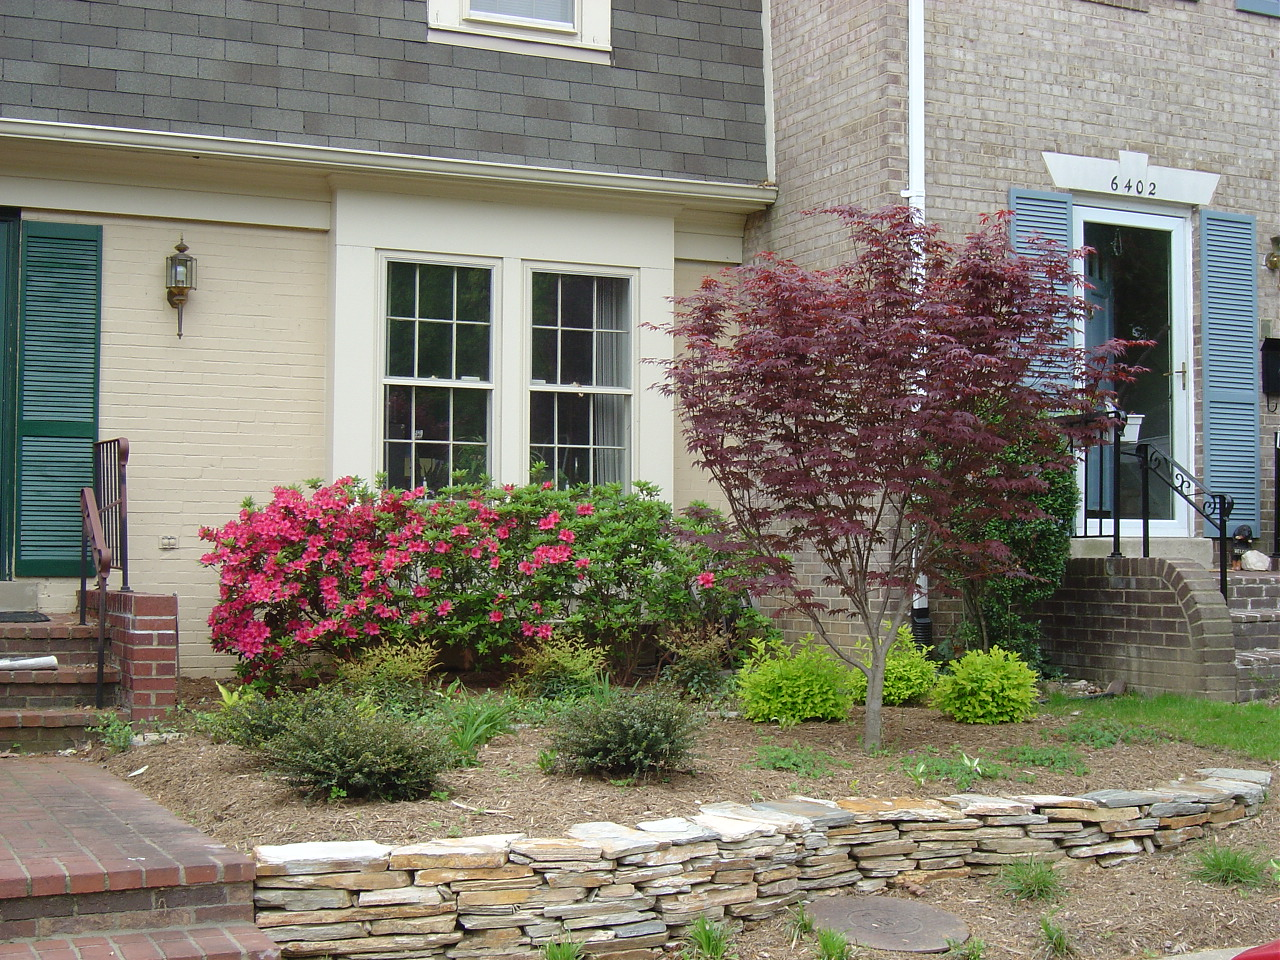 Townhouse with curb appeal from colorful plants